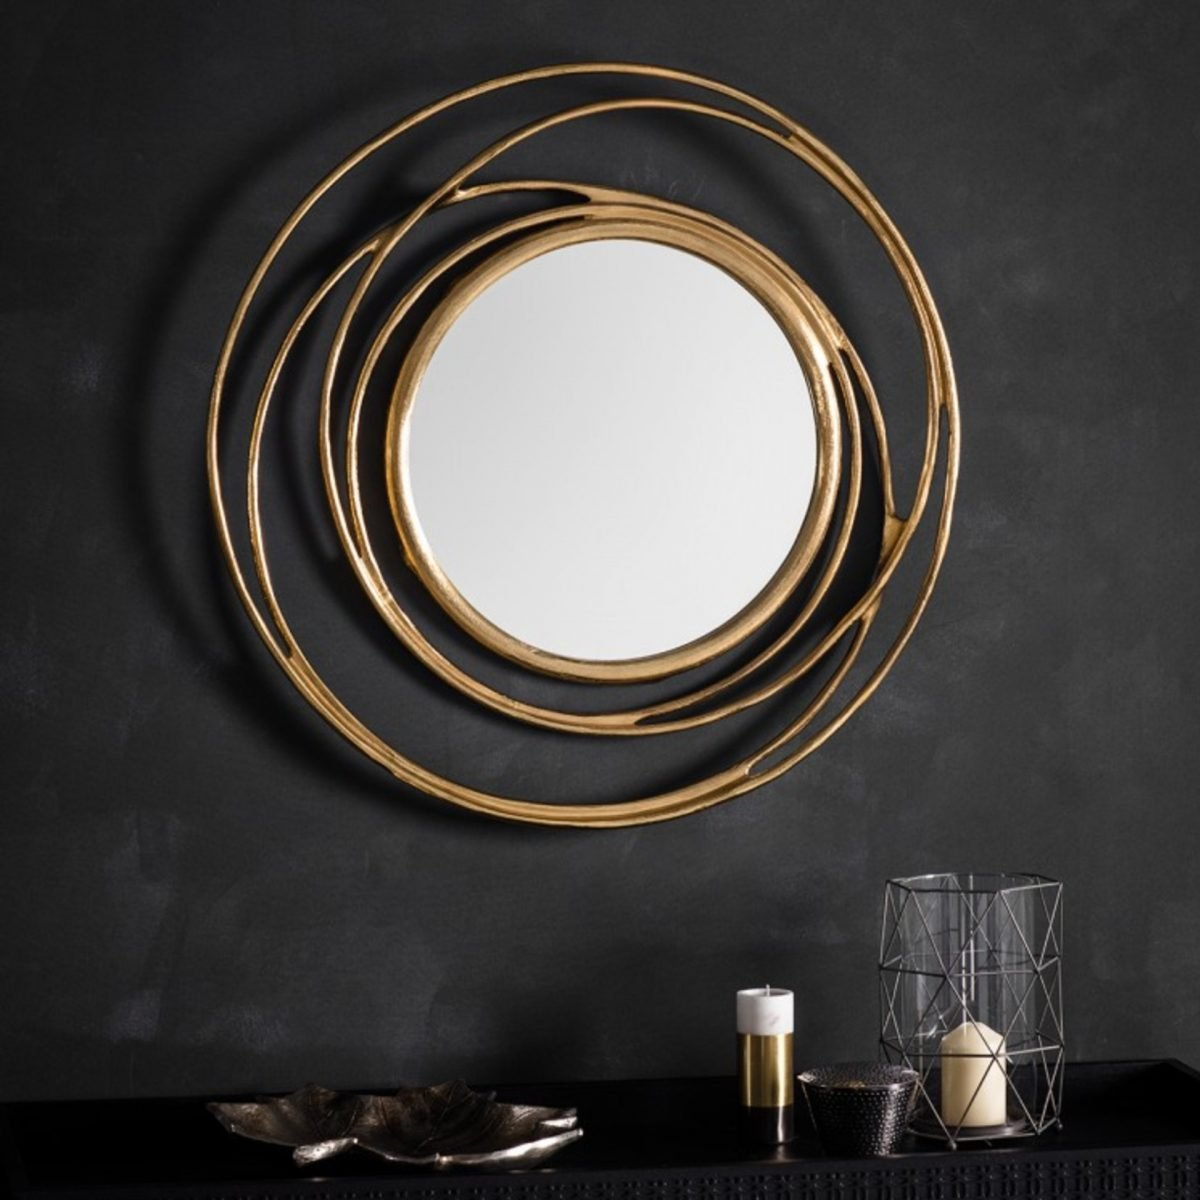 Satin Gold Finish Metal Round Swirl Wall Mirror Contemporary allende